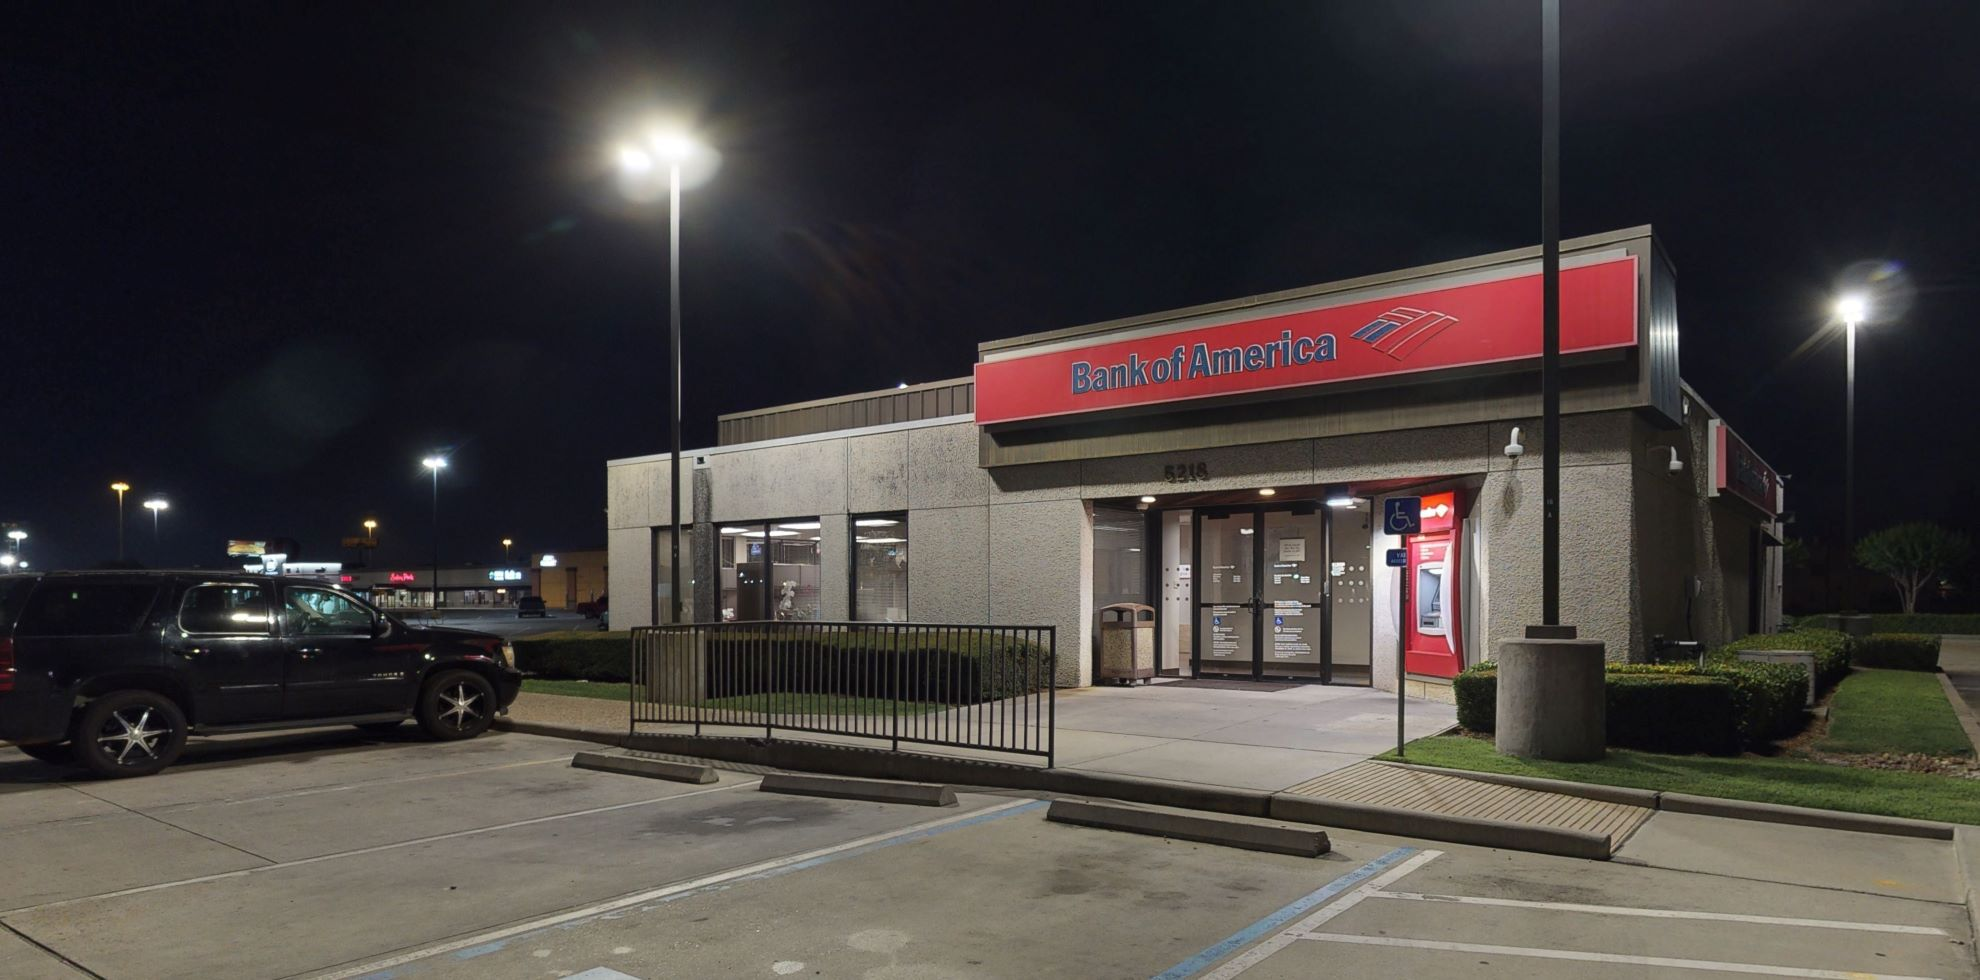 Bank of America financial center with drive-thru ATM   5218 W 34th St, Houston, TX 77092